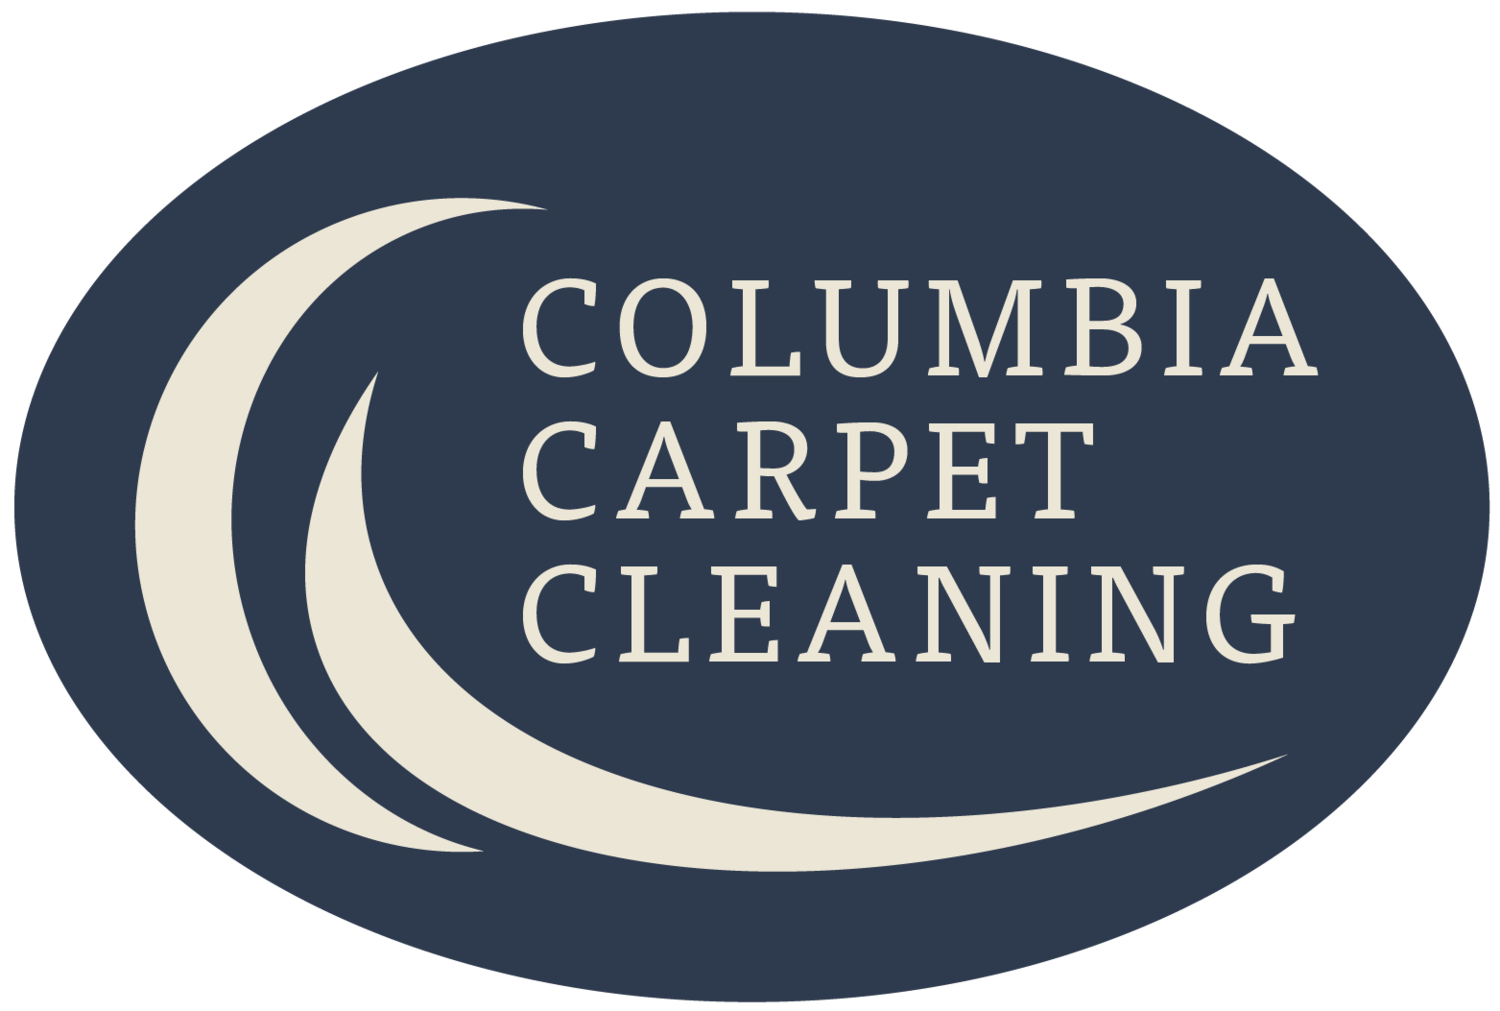 Columbia Carpet Cleaning